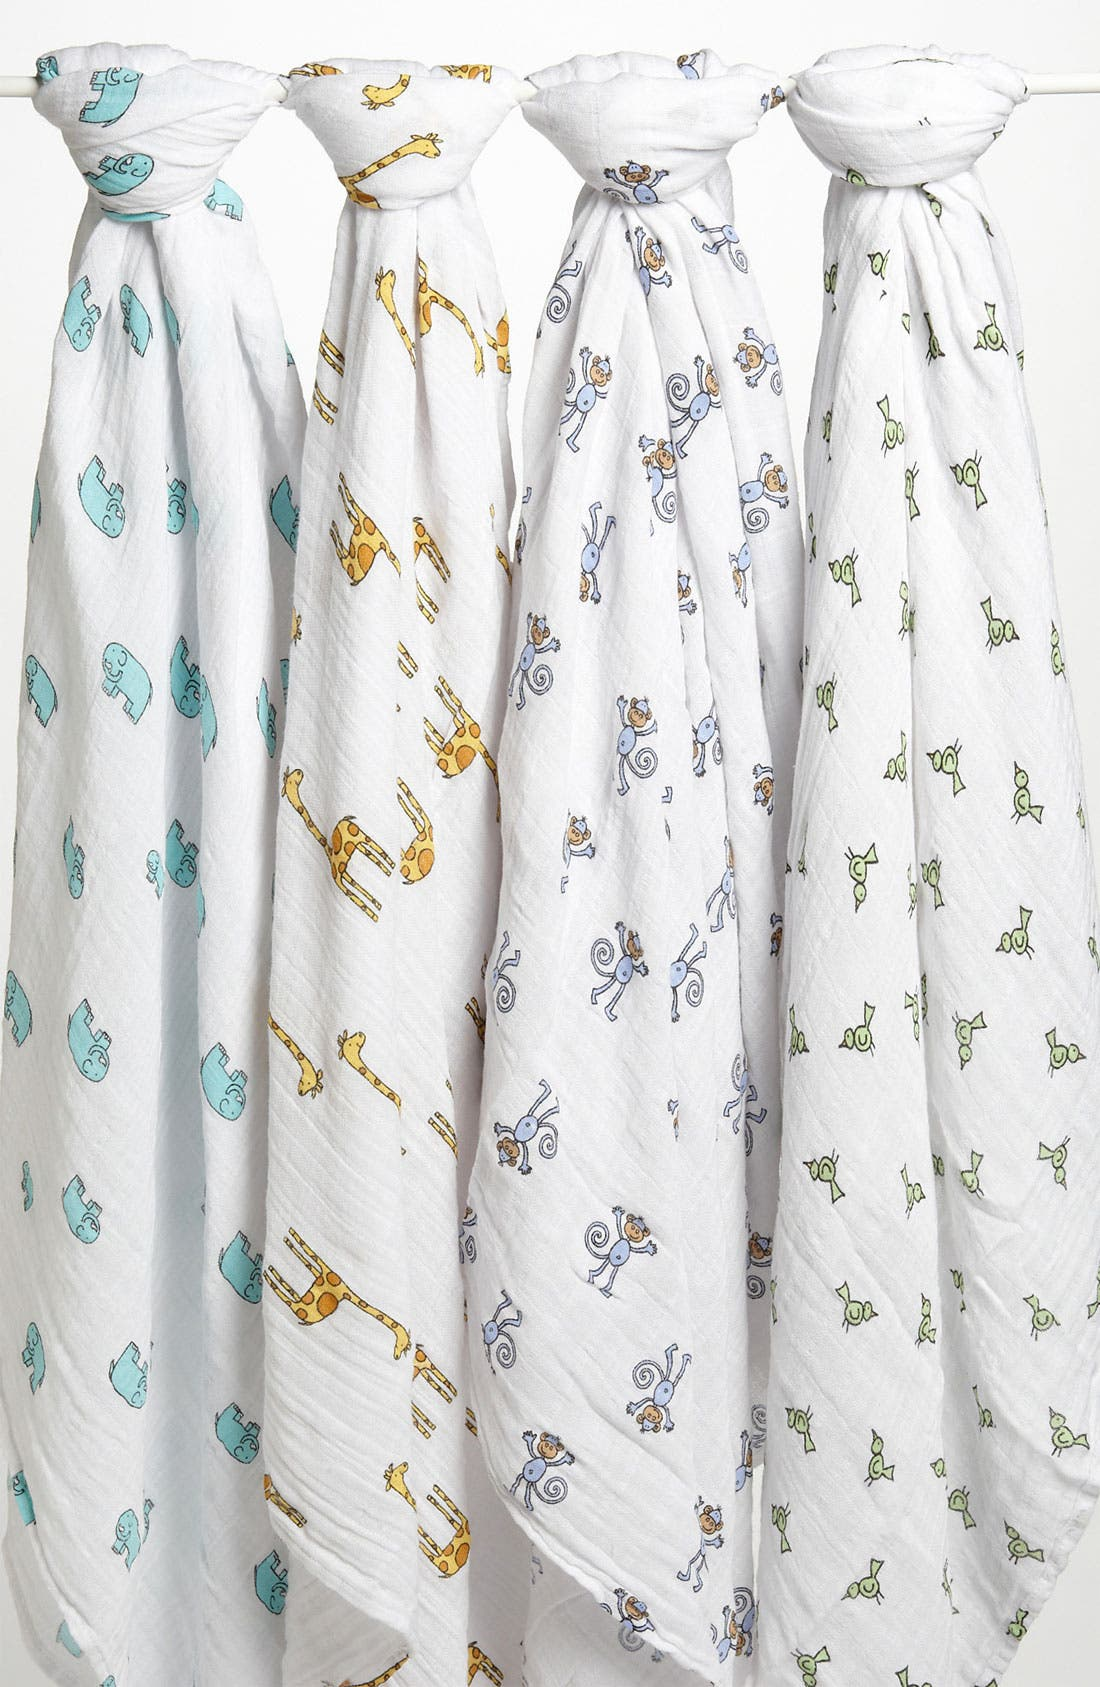 Alternate Image 1 Selected - aden + anais Set of 4 Classic Swaddling Cloths